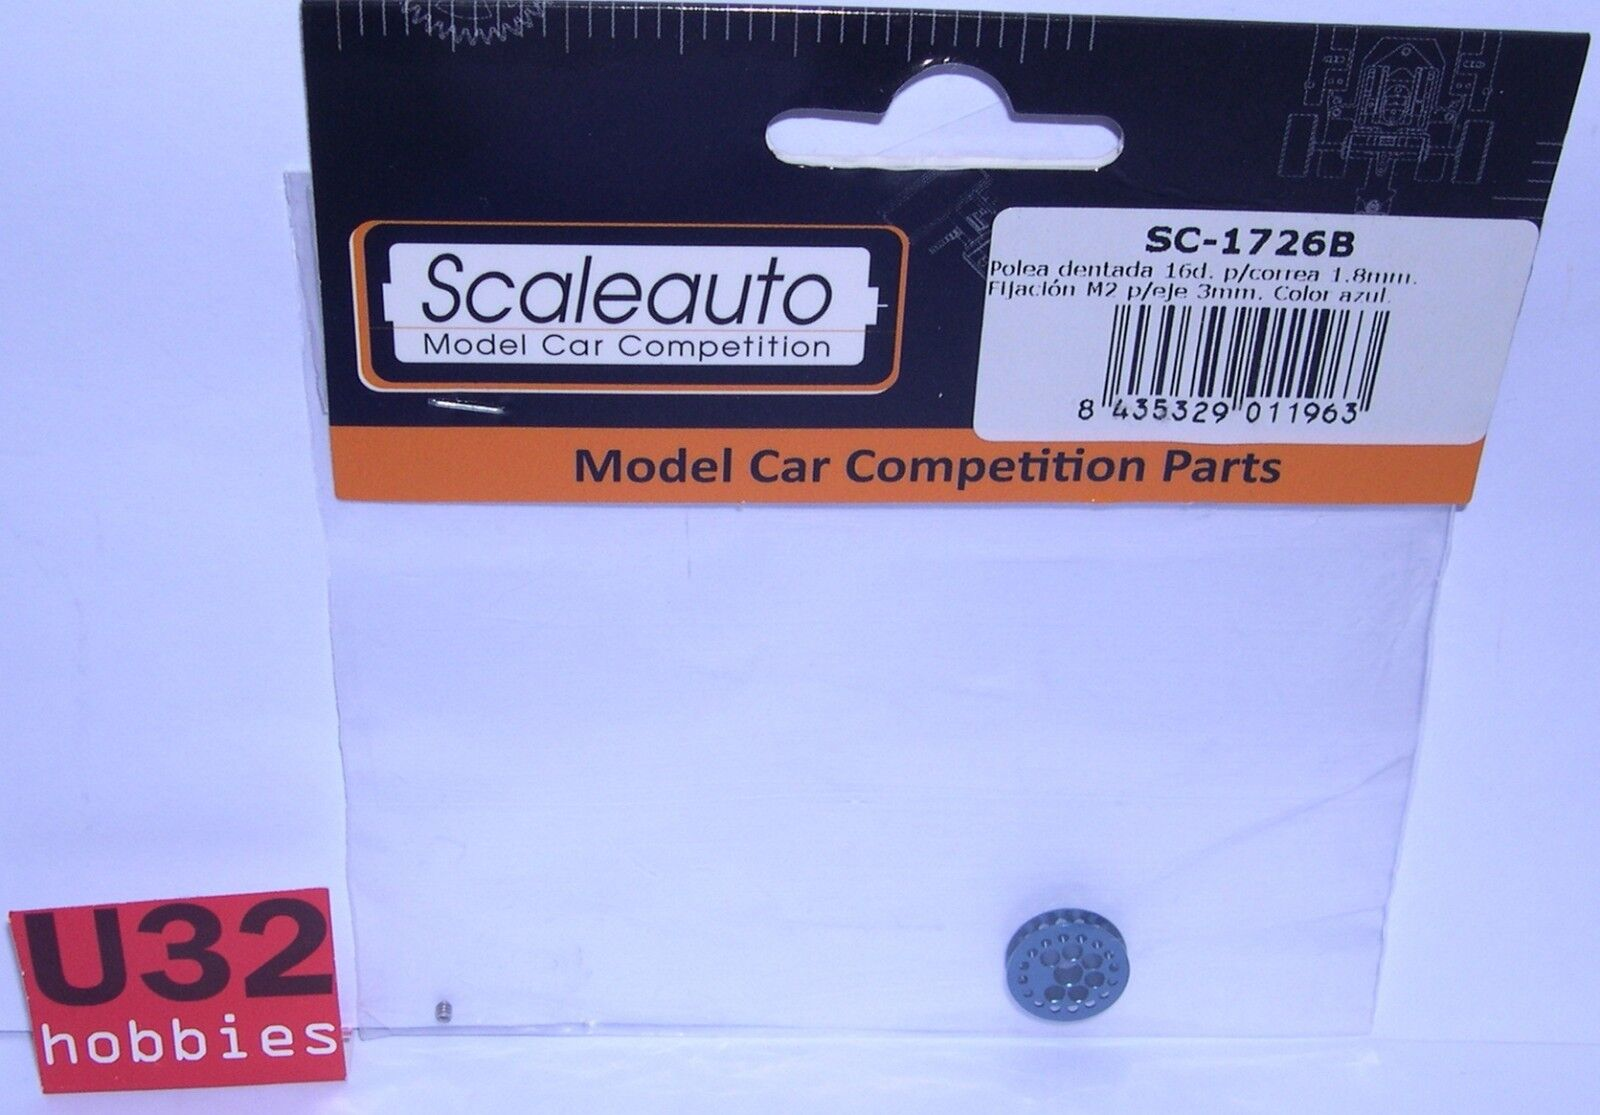 SCALEAUTO SC-1726B PULLEY TOOTHED WHEELS 16 TEETH 0 1 16in AXIS 0 1 8in blueE